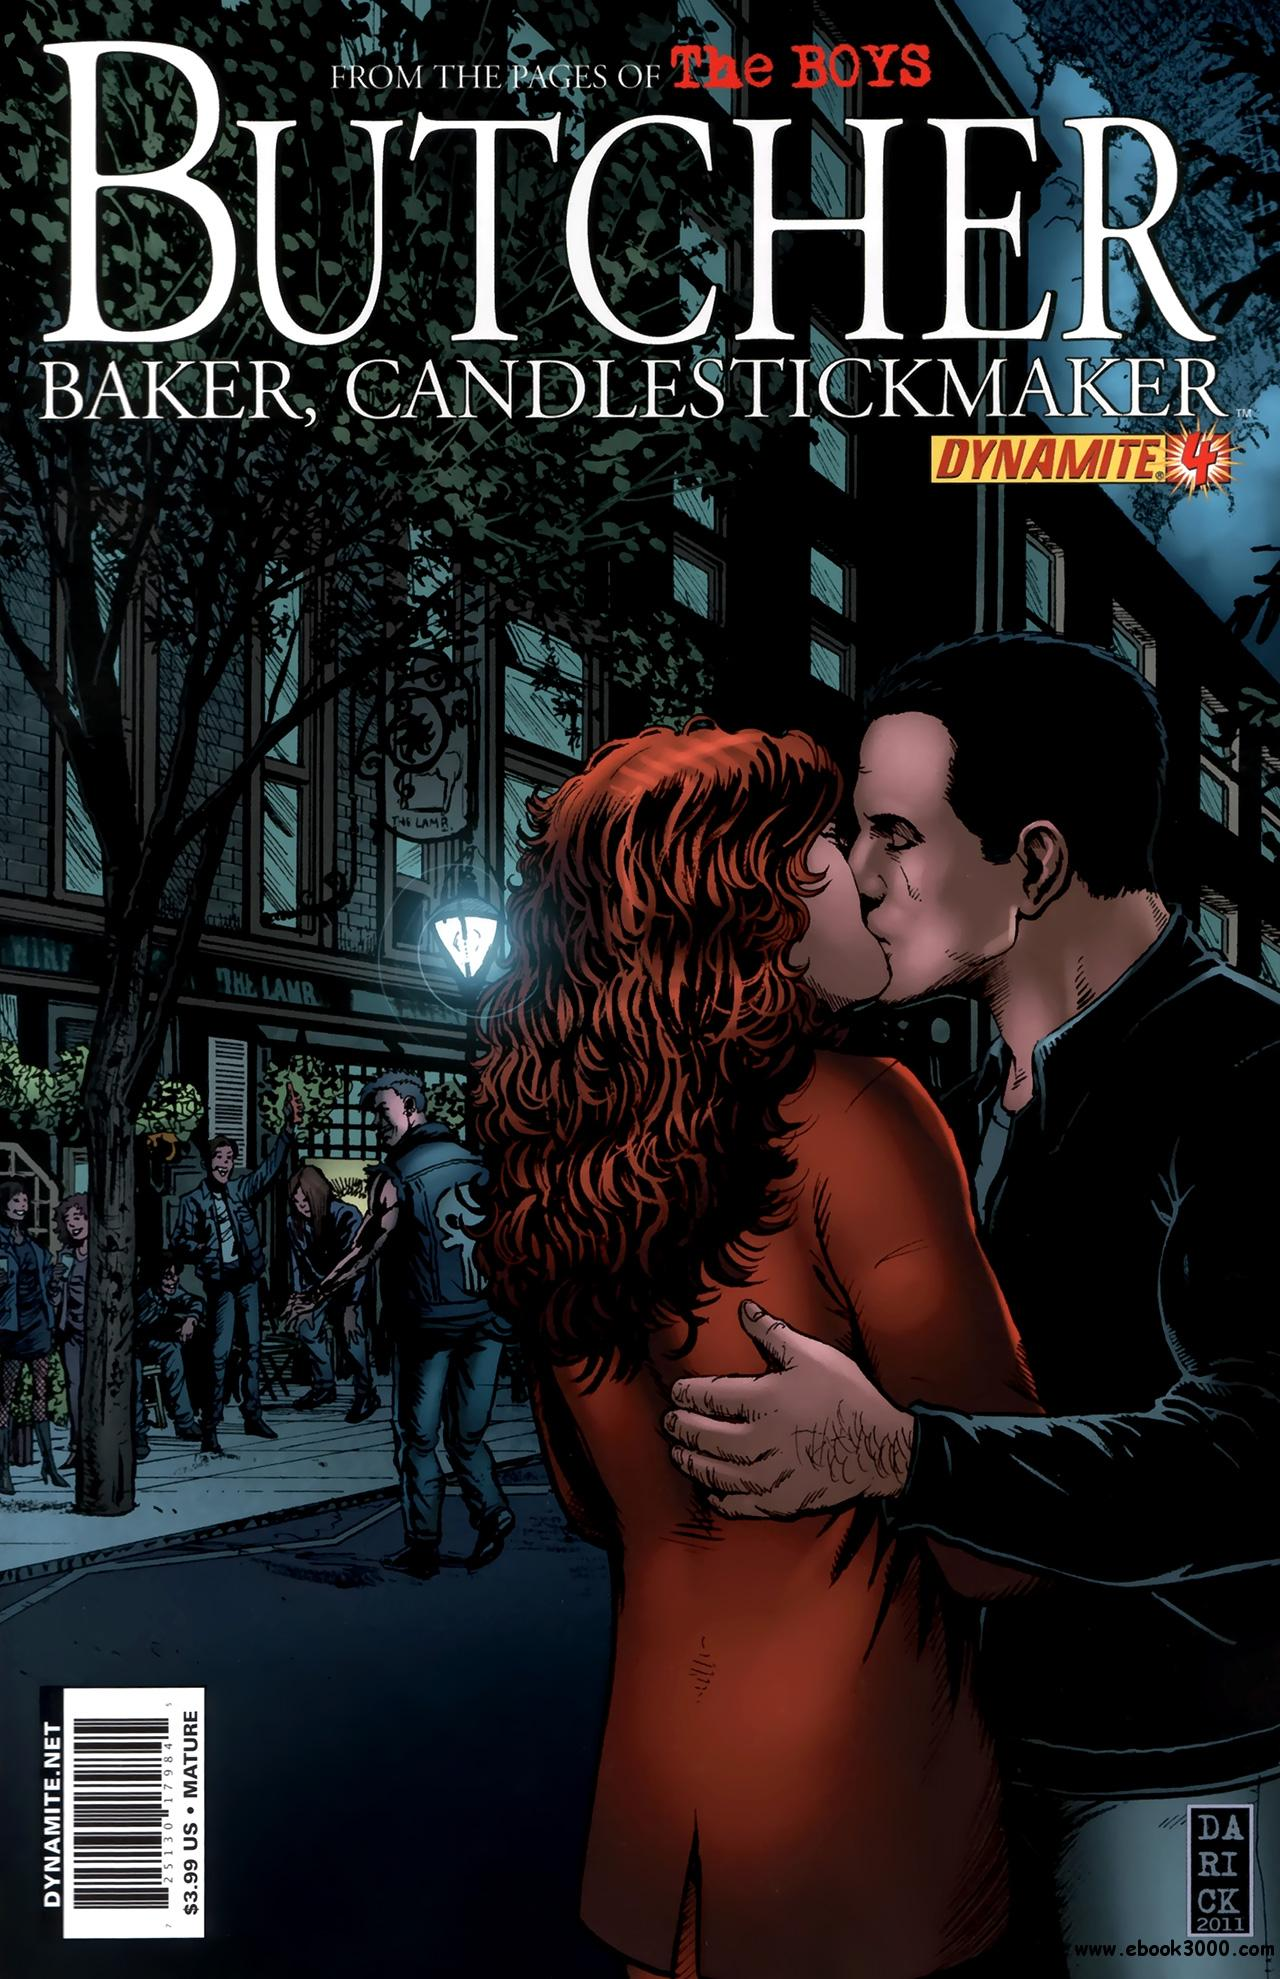 The Boys - Butcher, Baker, Candlestickmaker #4 (of 06) (2011) free download